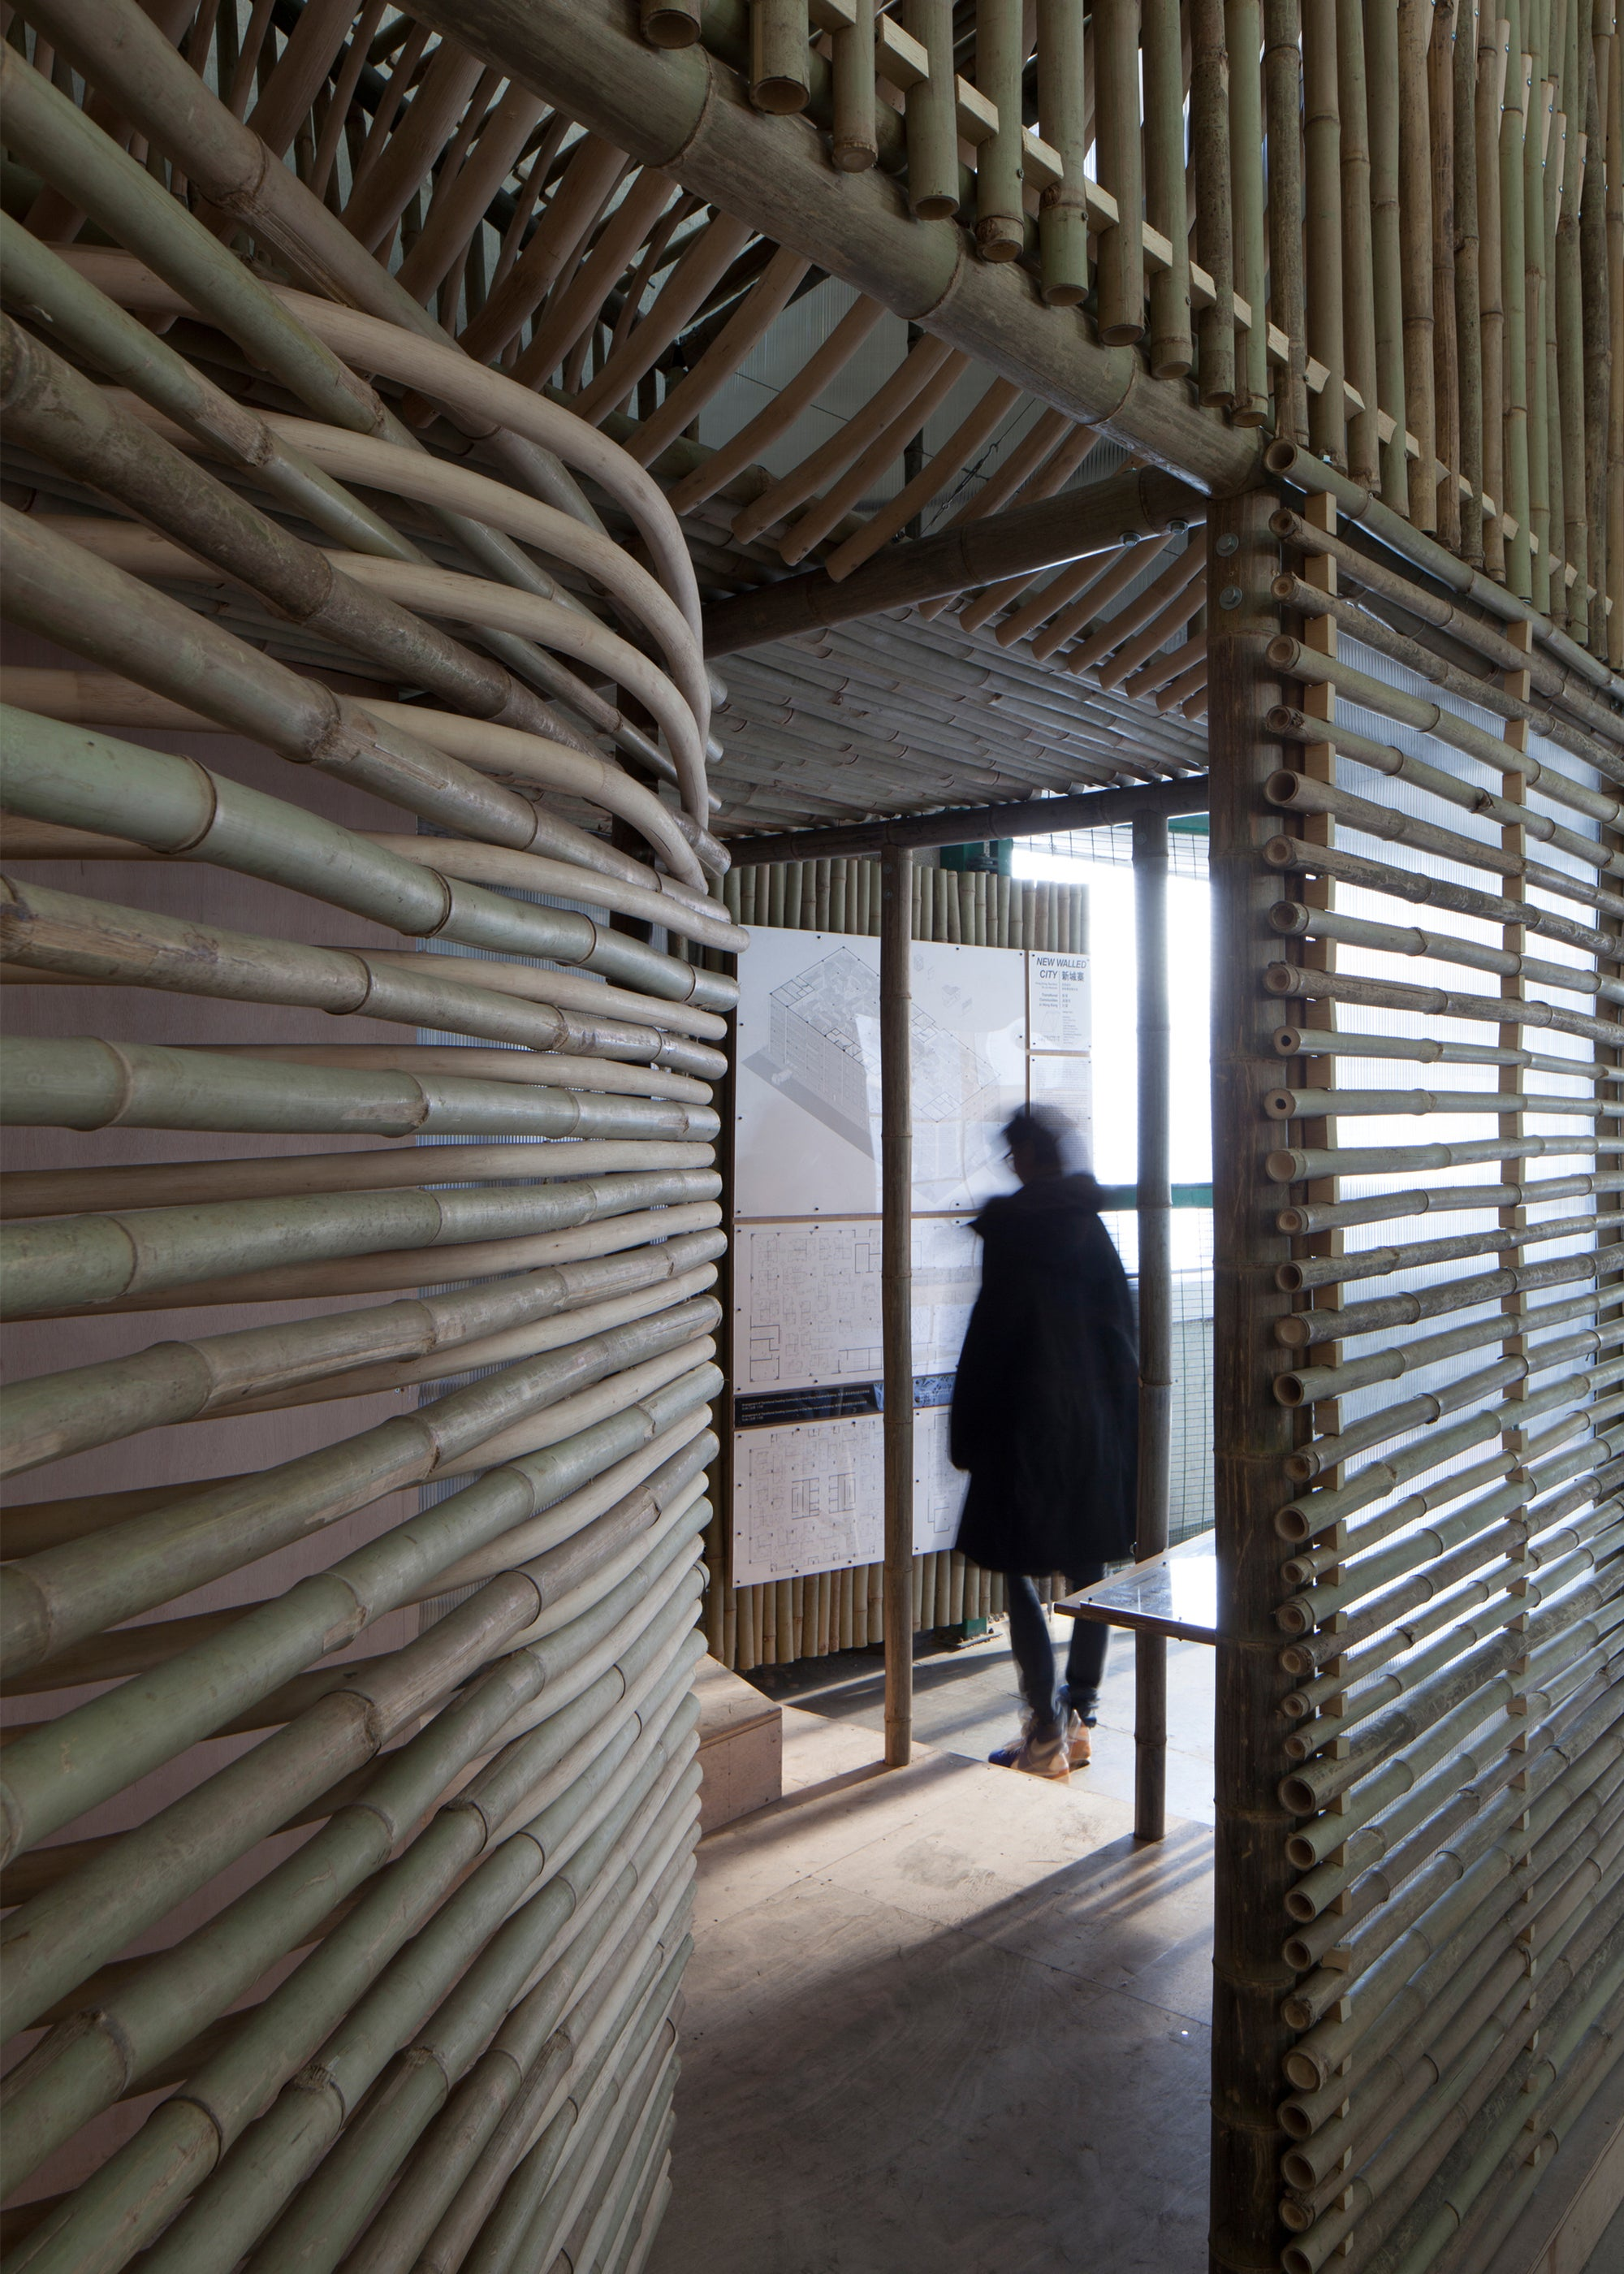 These Bamboo Micro-Homes Would Turn Abandoned Buildings Into Villages